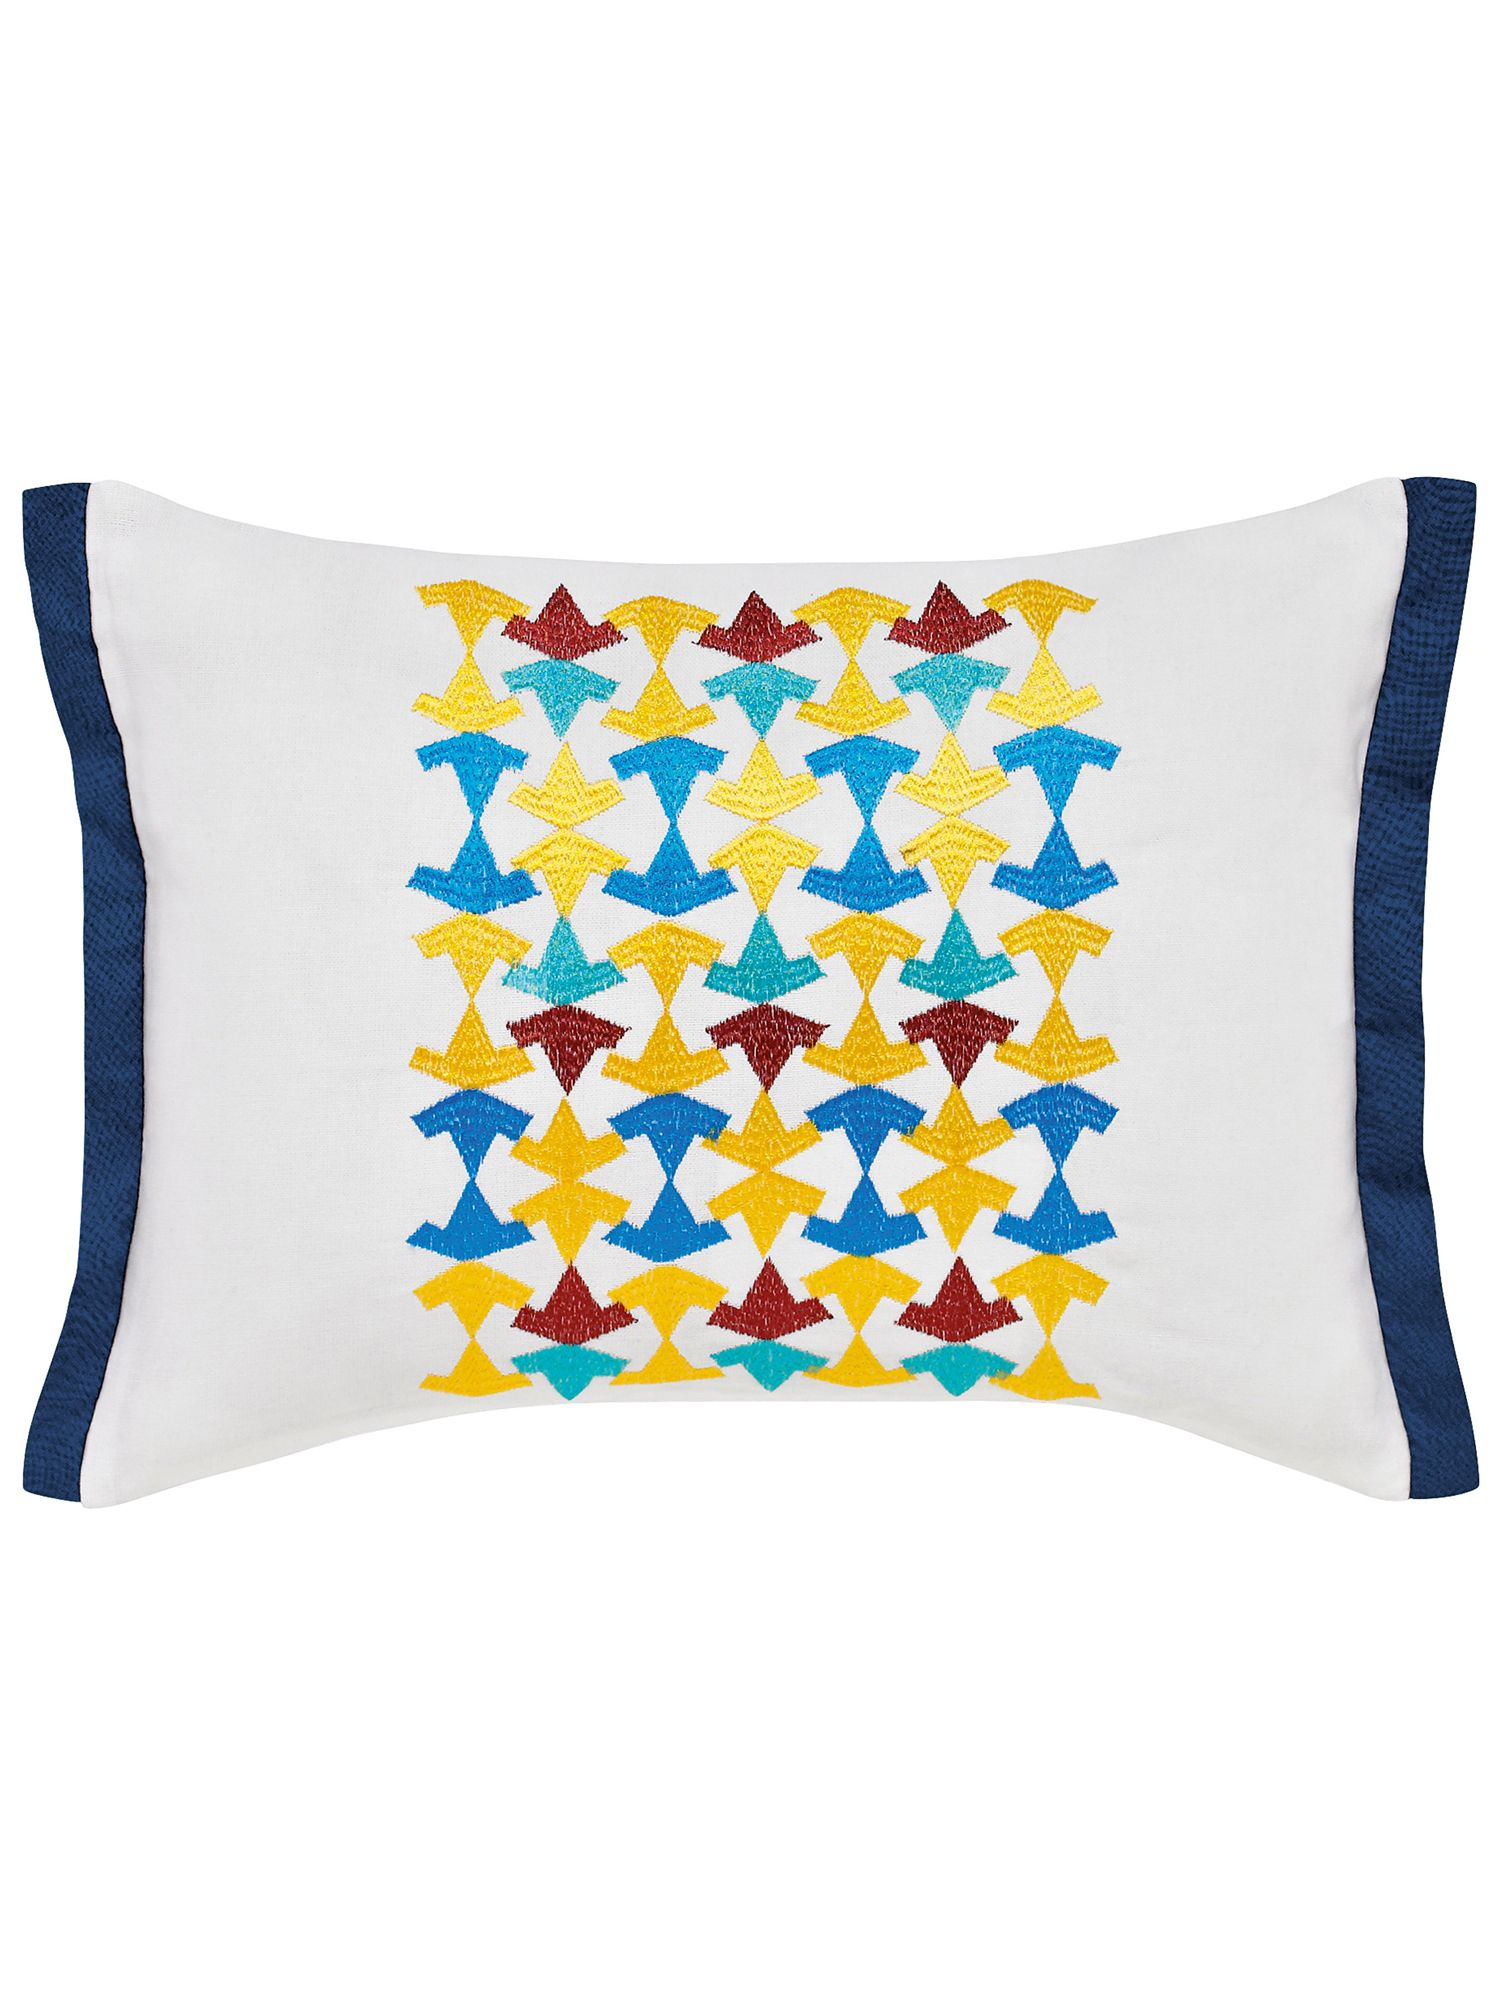 Image of V&A Alhambra cushion 30x40cm white & navy